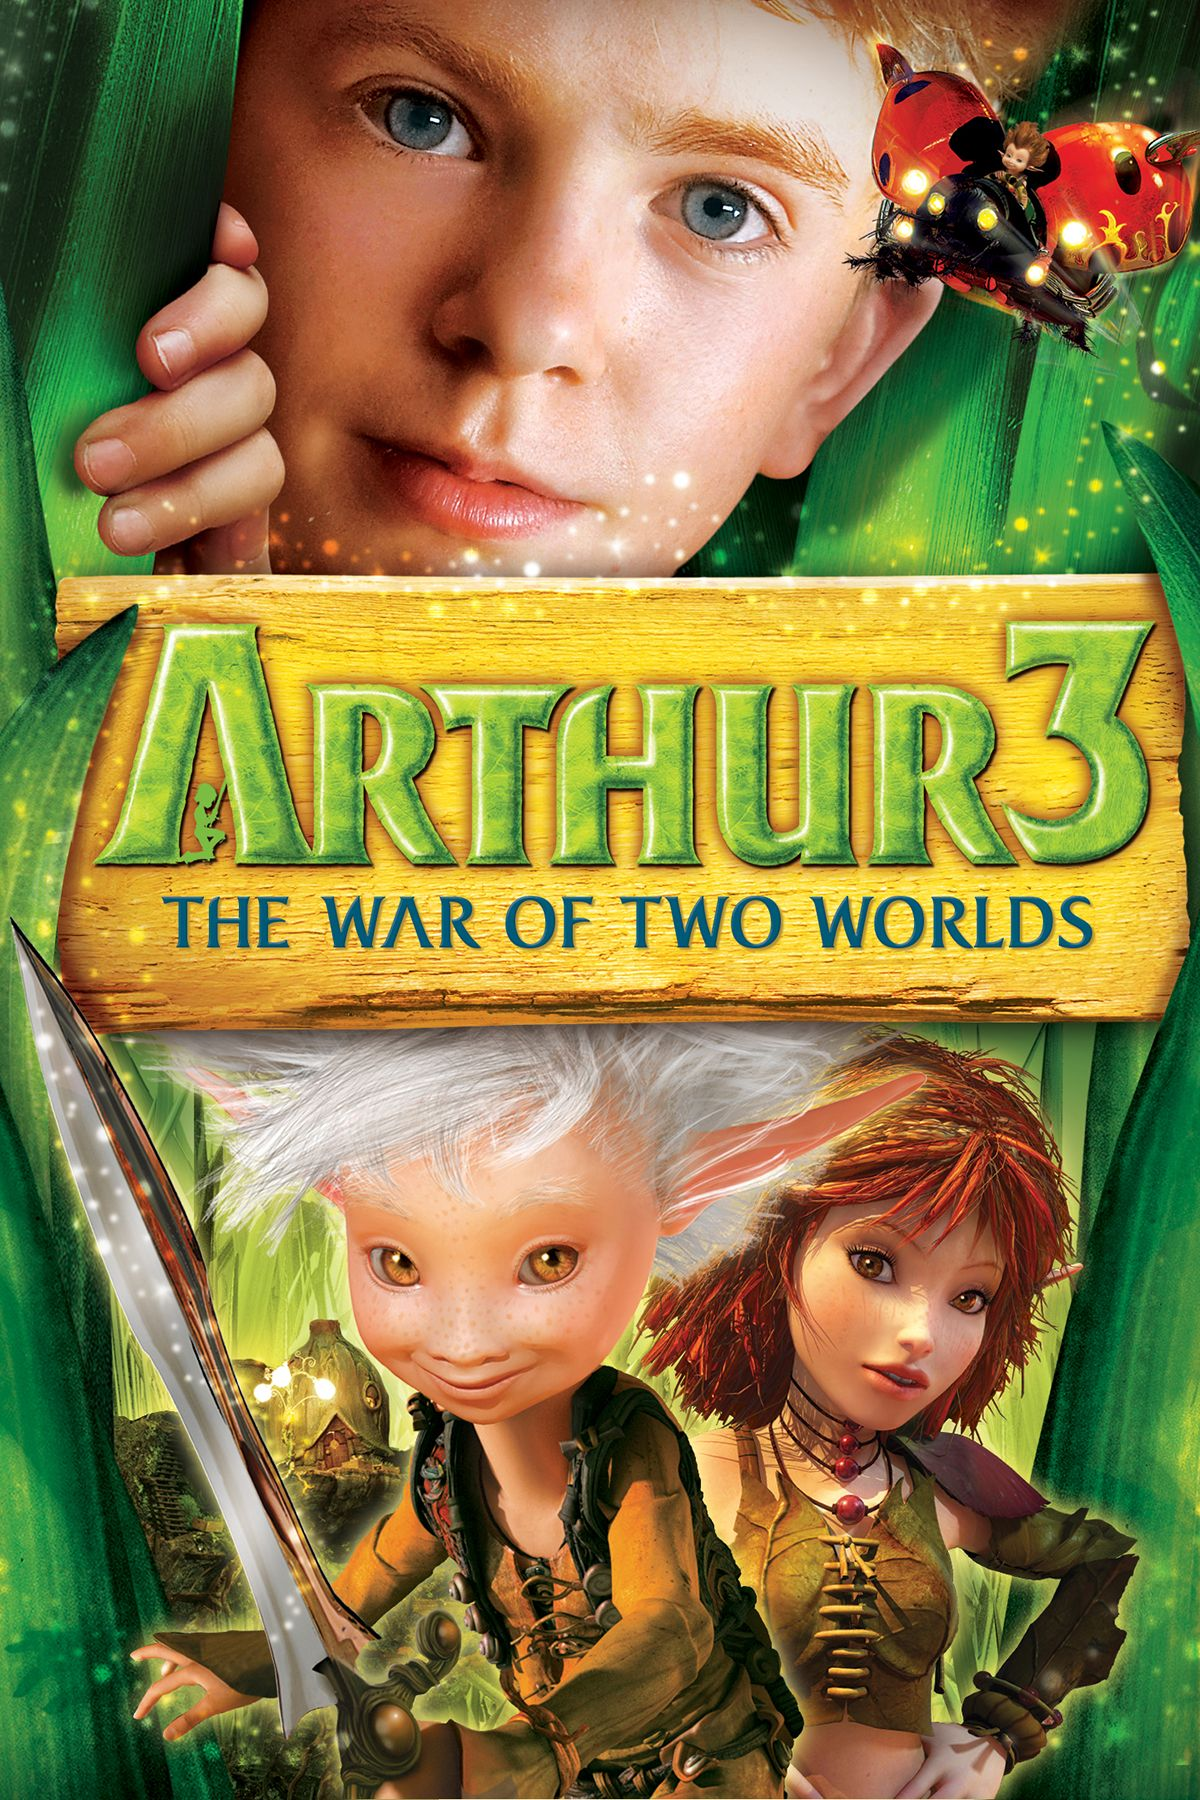 Arthur And The Invisibles 3 War Of Two Worlds Full Movie Movies Anywhere